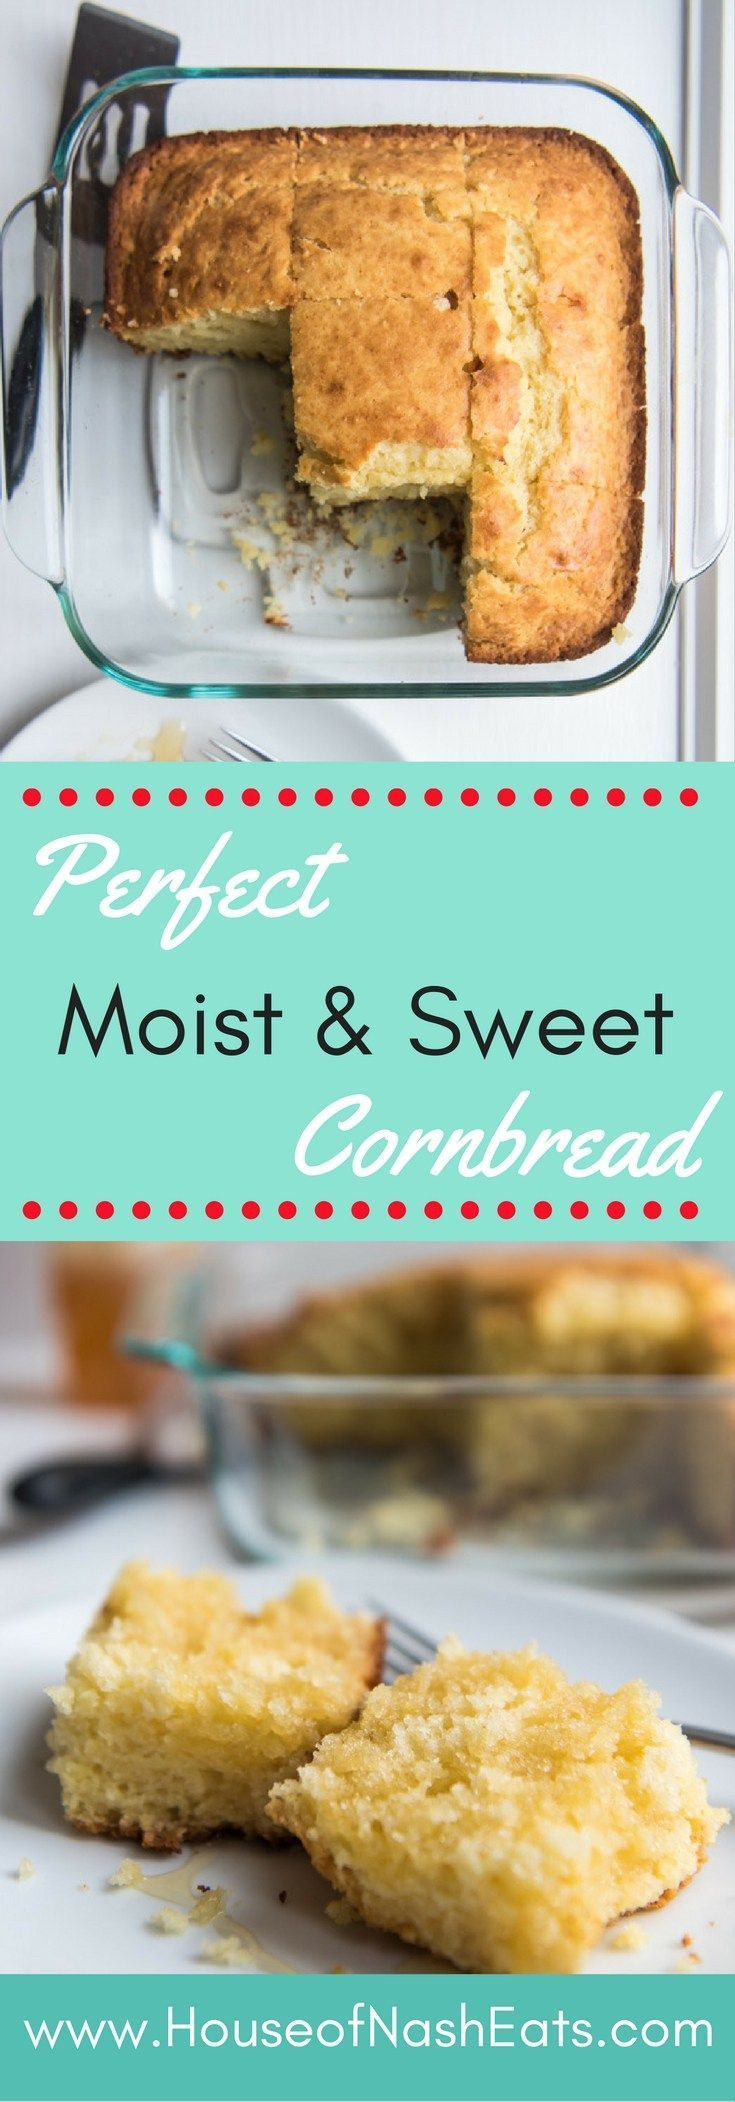 Your search for the ultimate cornbread recipe is over! This soft and slightly…